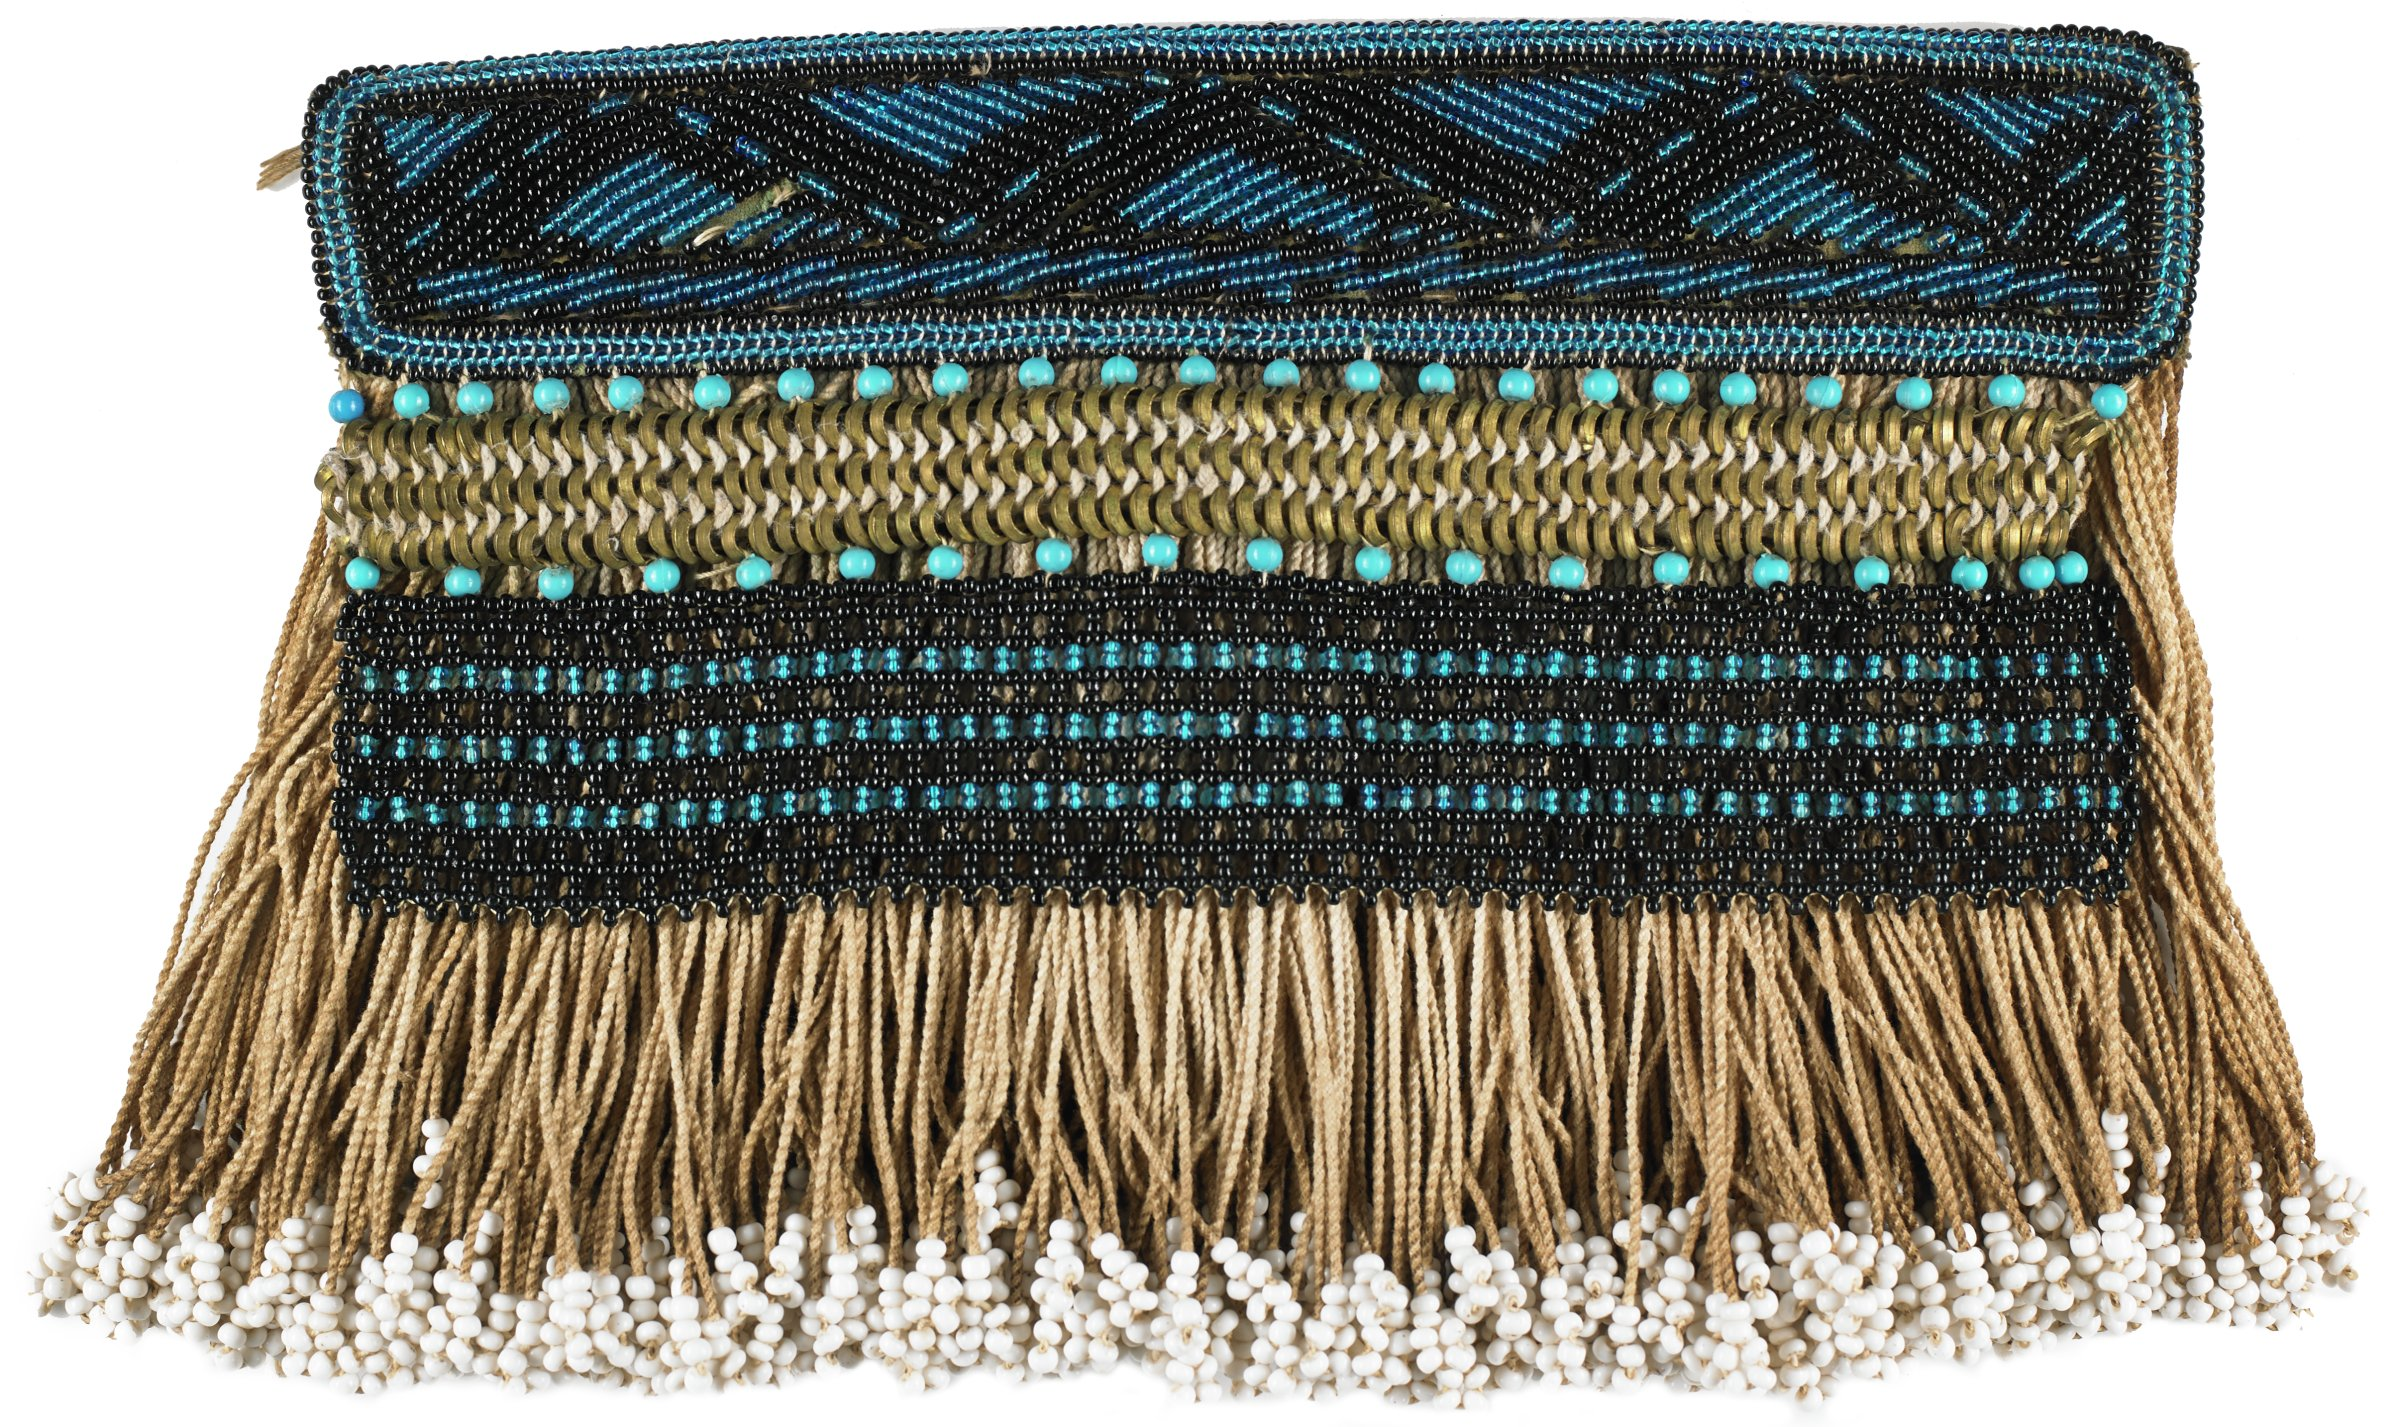 Child's Apron (gabi), Ndebele people, South Africa, African, glass beads, textile, string, commercial hosiery